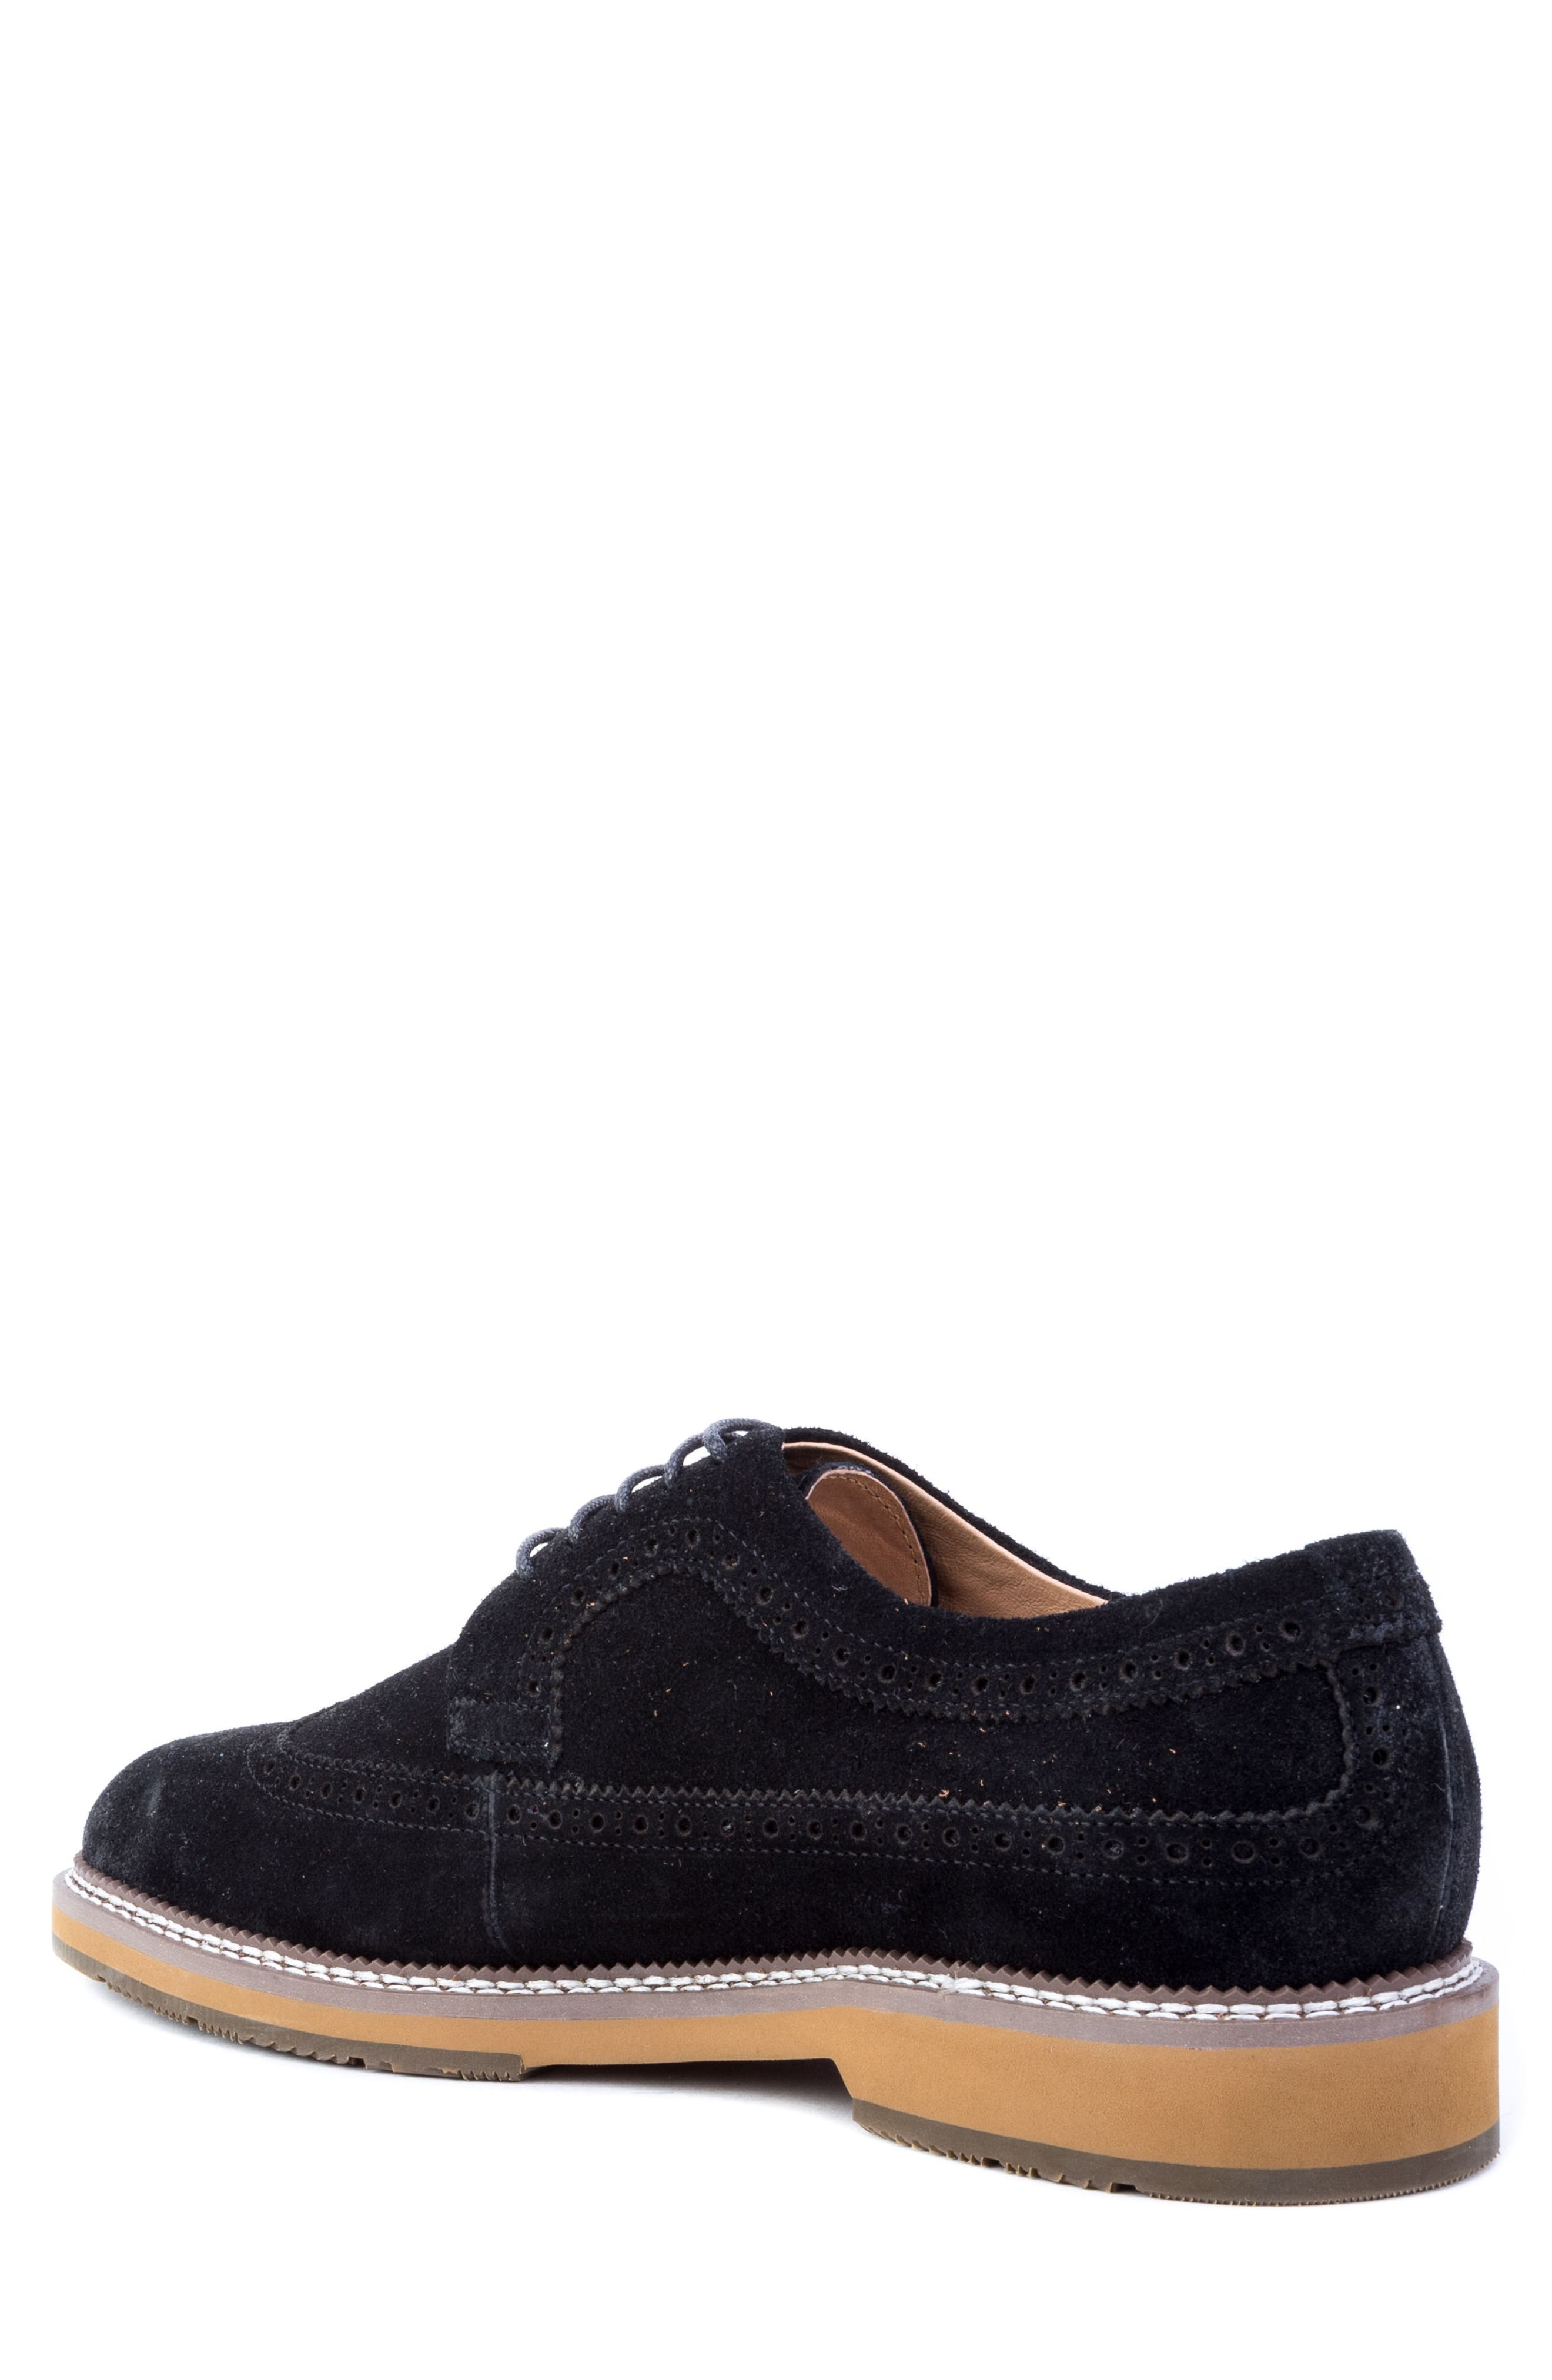 Modigliani Wingtip Derby,                             Alternate thumbnail 2, color,                             BLACK SUEDE